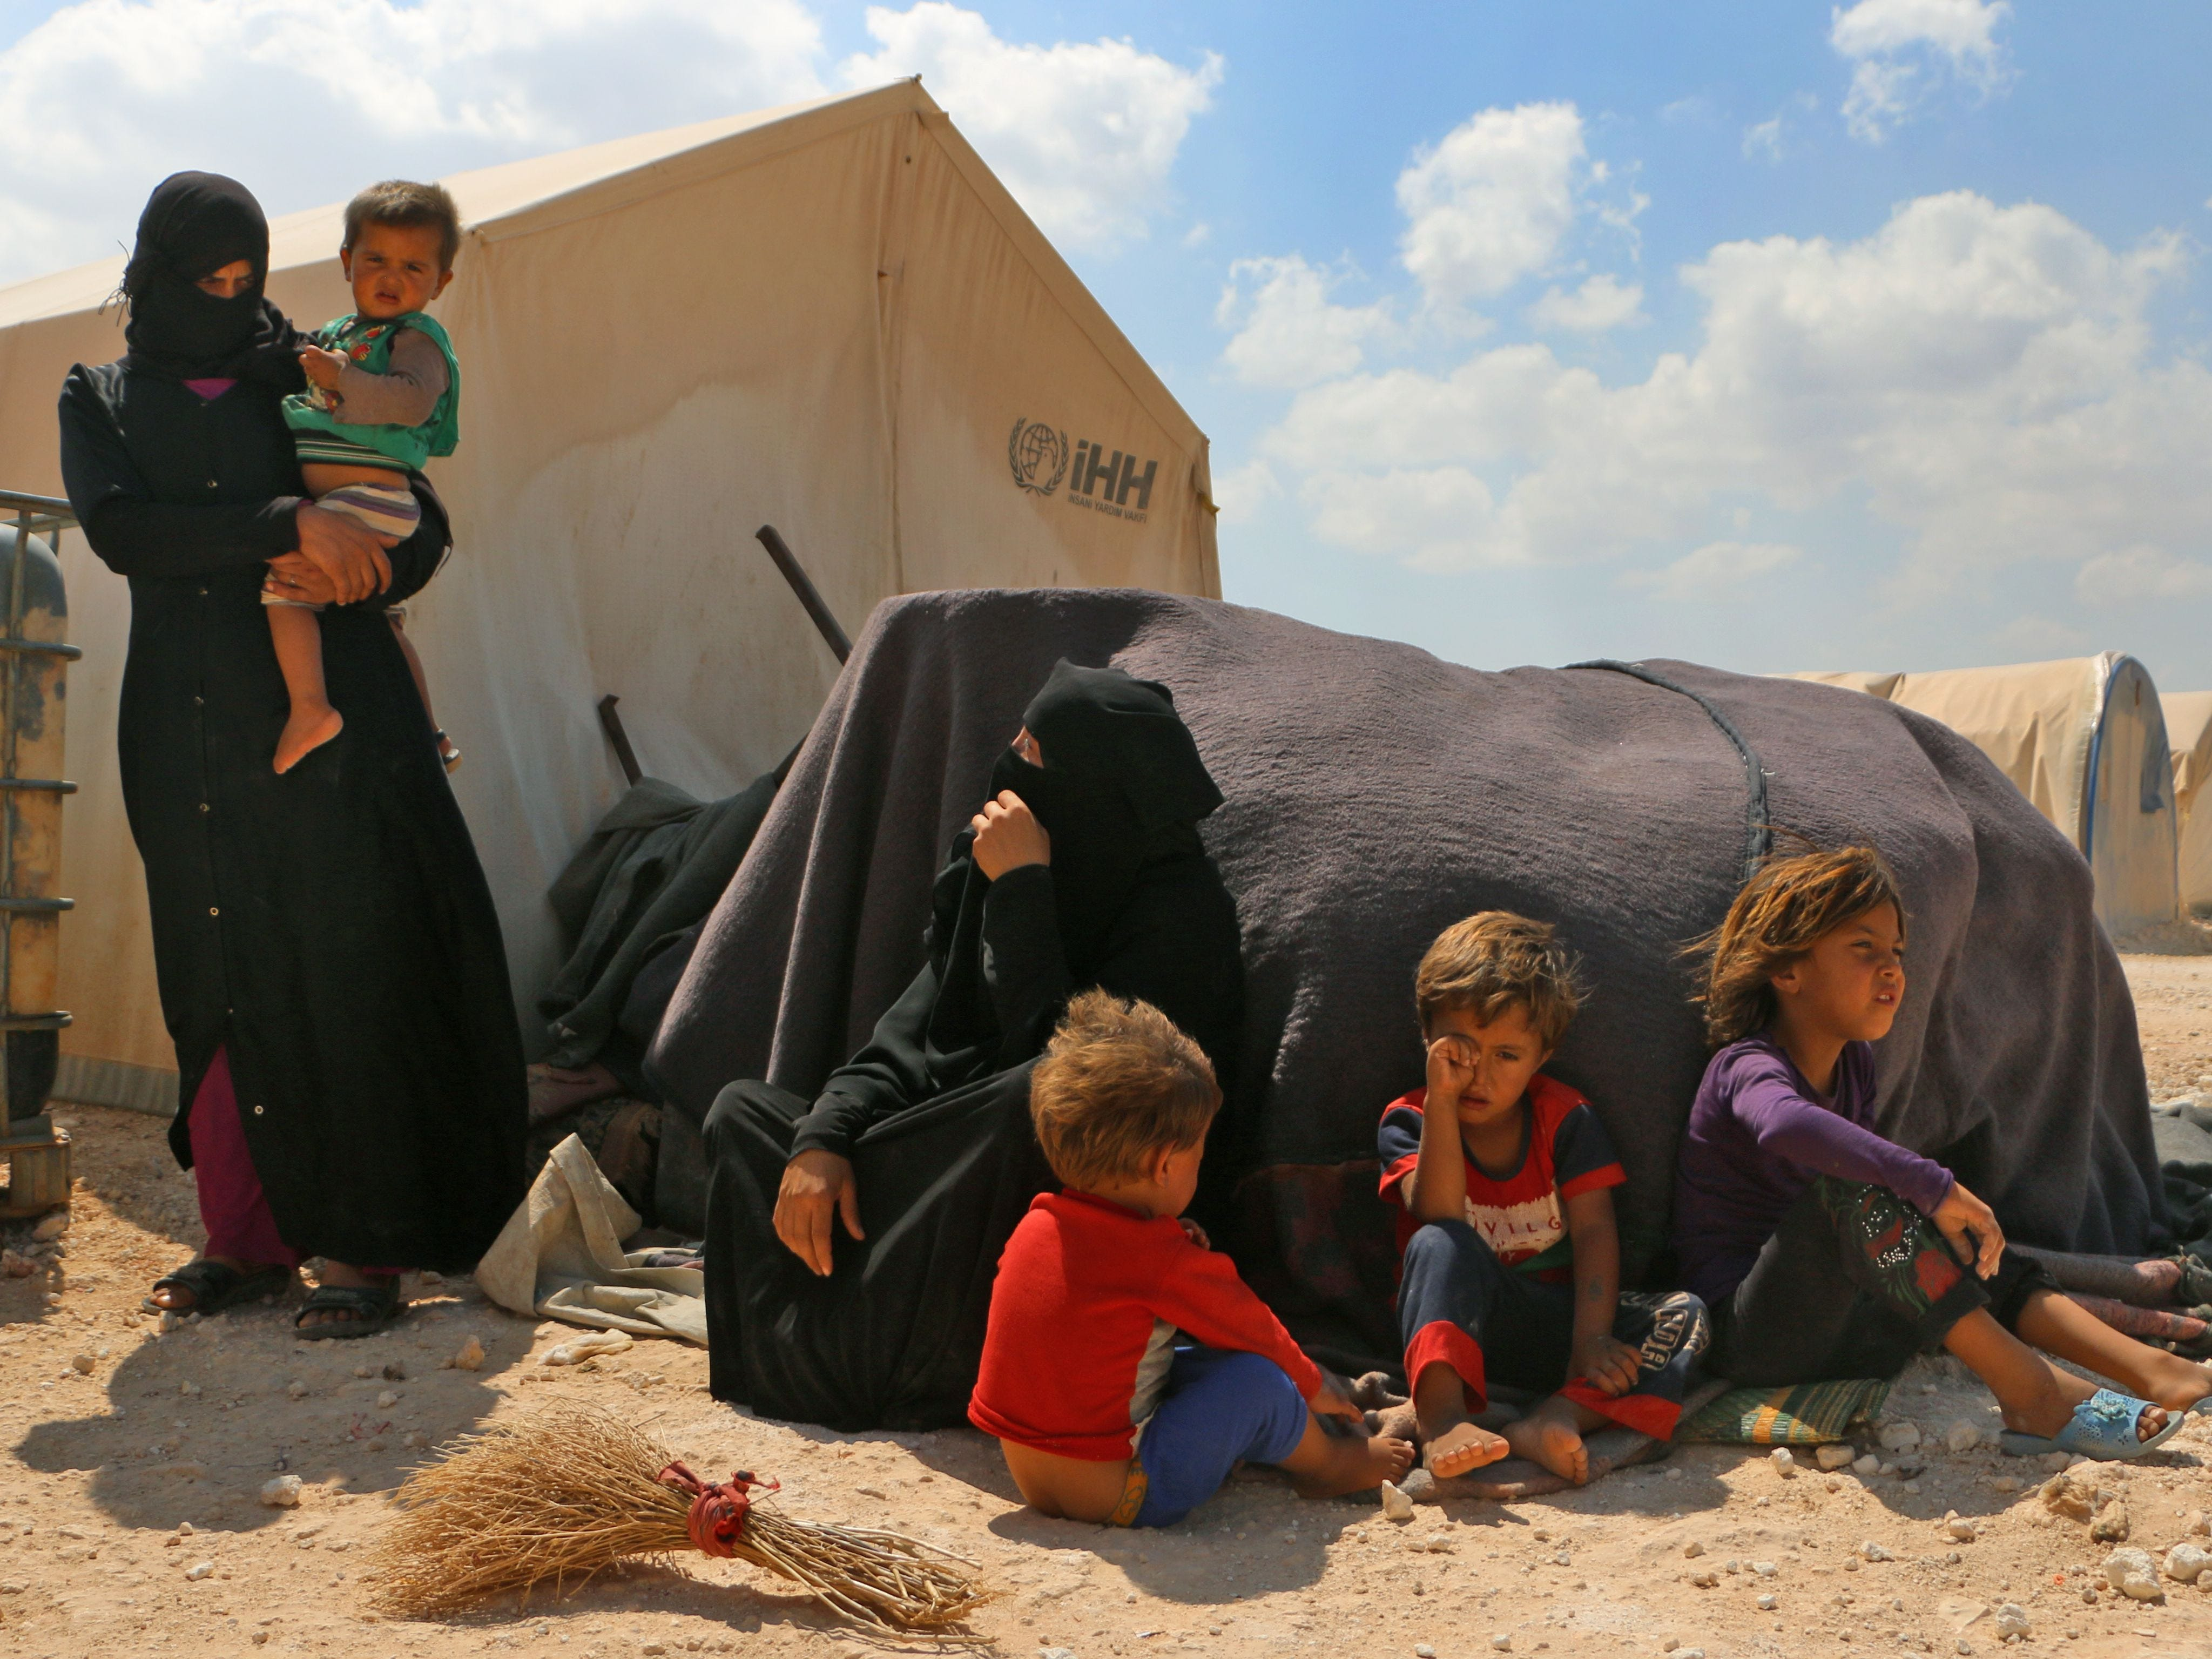 Displaced Syrians are seen at a camp in Kafr Lusin near the Bab al-Hawa border crossing with Turkey in the northern part of Syria's rebel-held Idlib province on Sept. 6, 2018. Hundreds of civilians have fled villages near the front line in Syria's Idlib province, fearing an imminent regime assault on the country's last major rebel bastion, a monitor said.